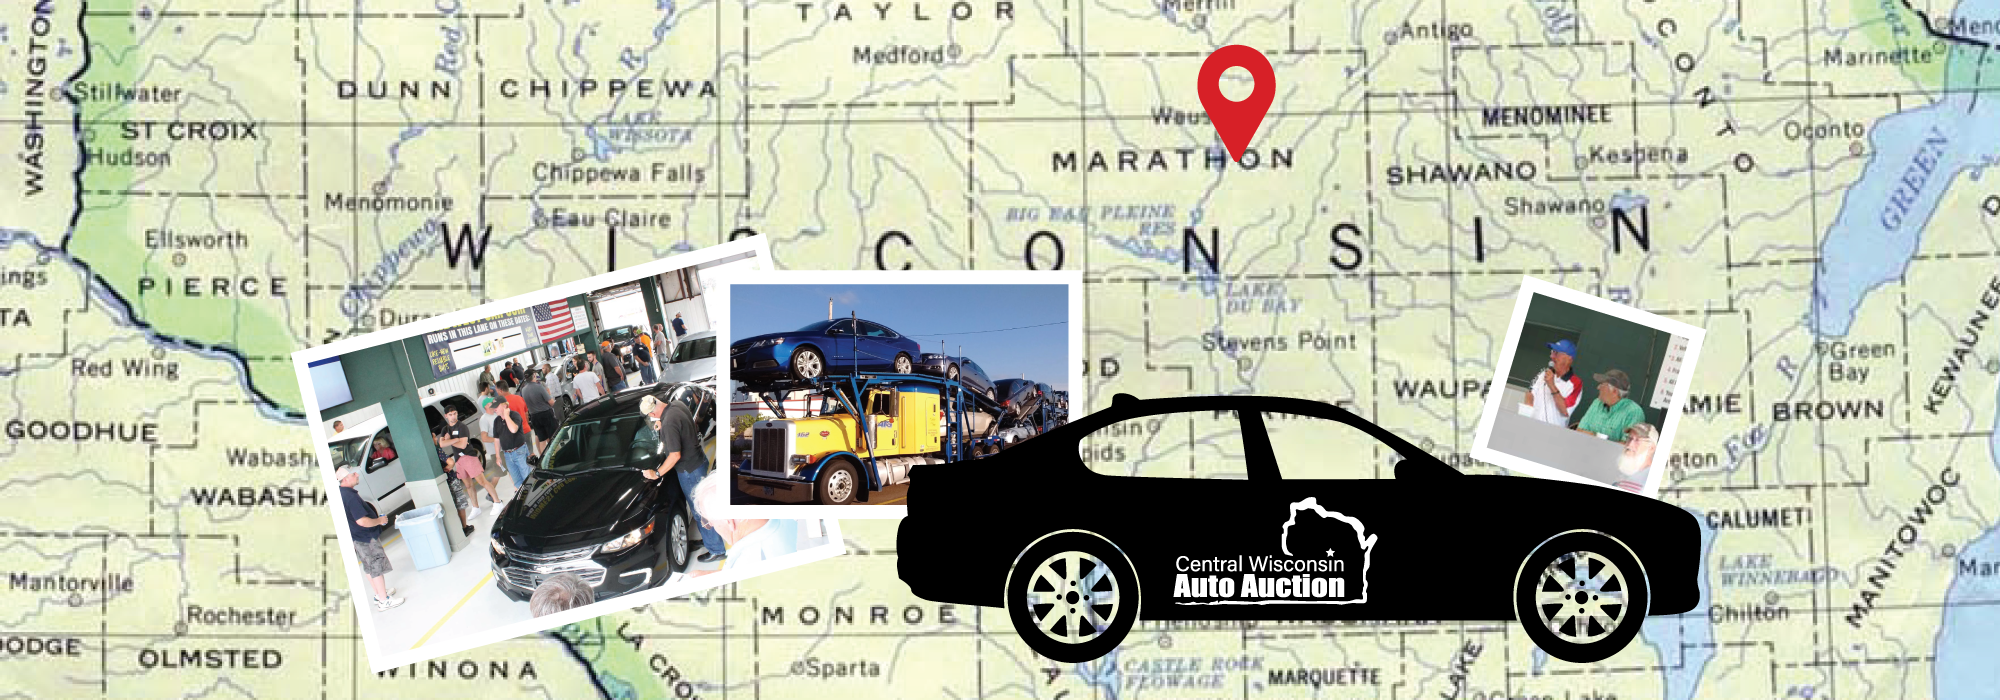 Home Central Wisconsin Auto Auction